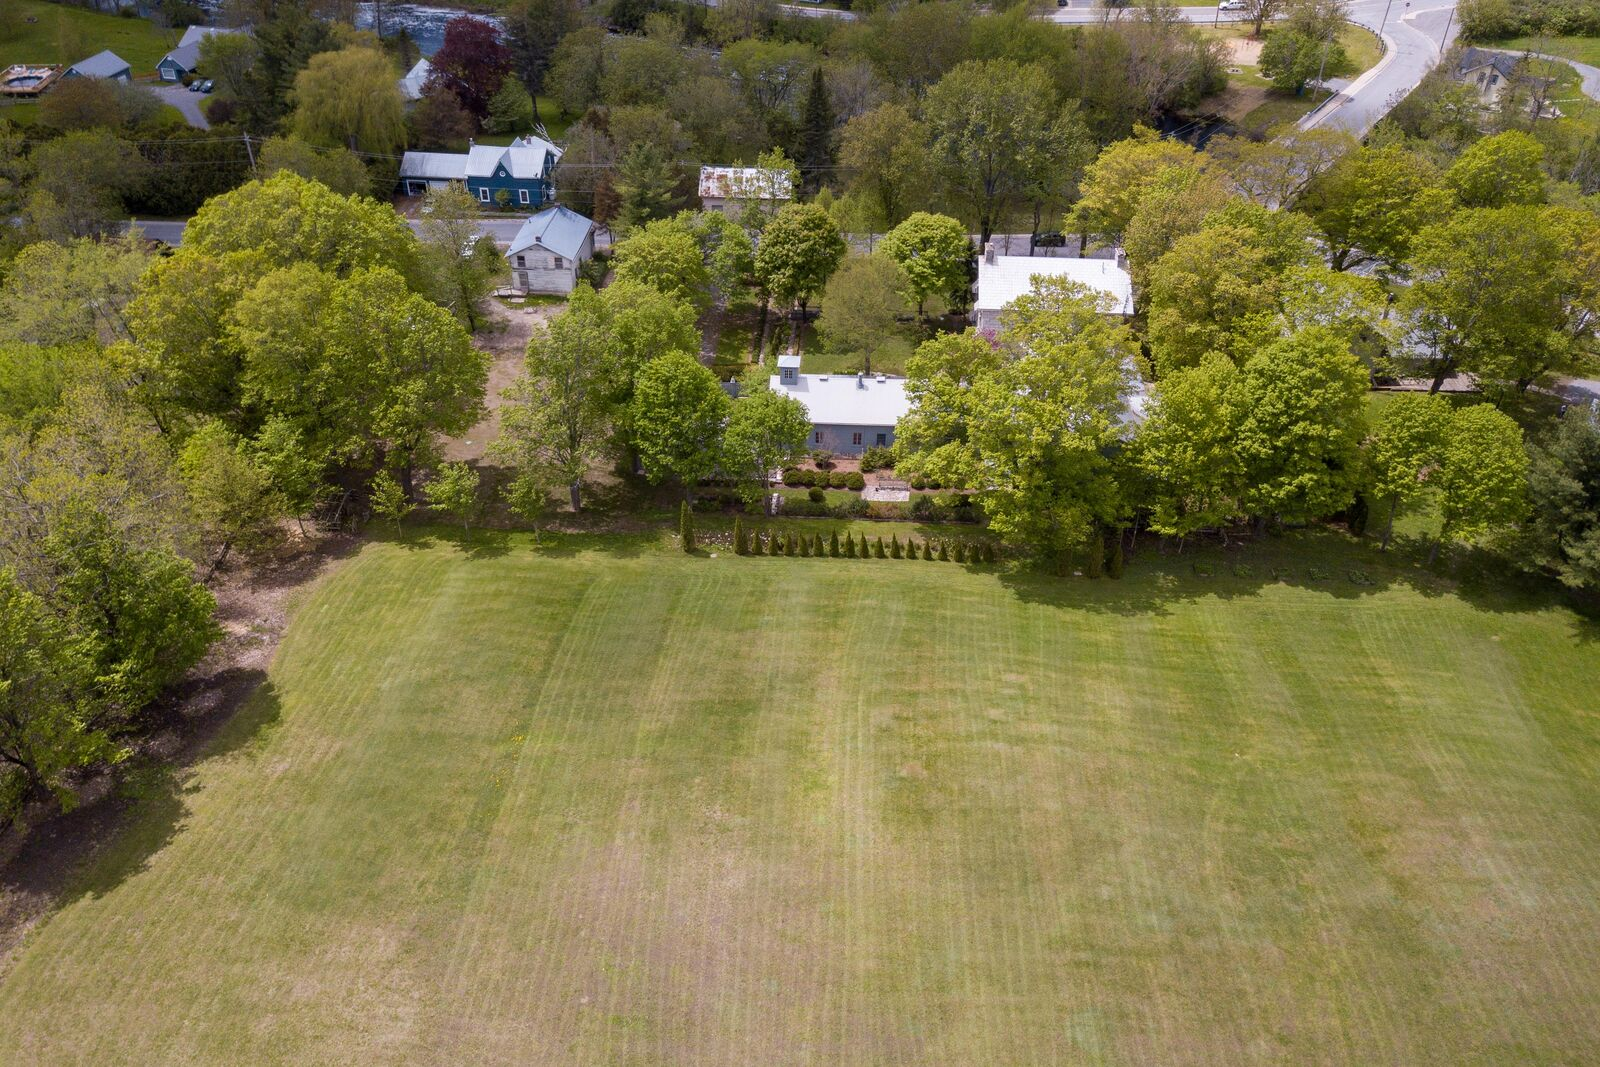 46 Aerial 2 316 Colebrook Rd, Stone Mills